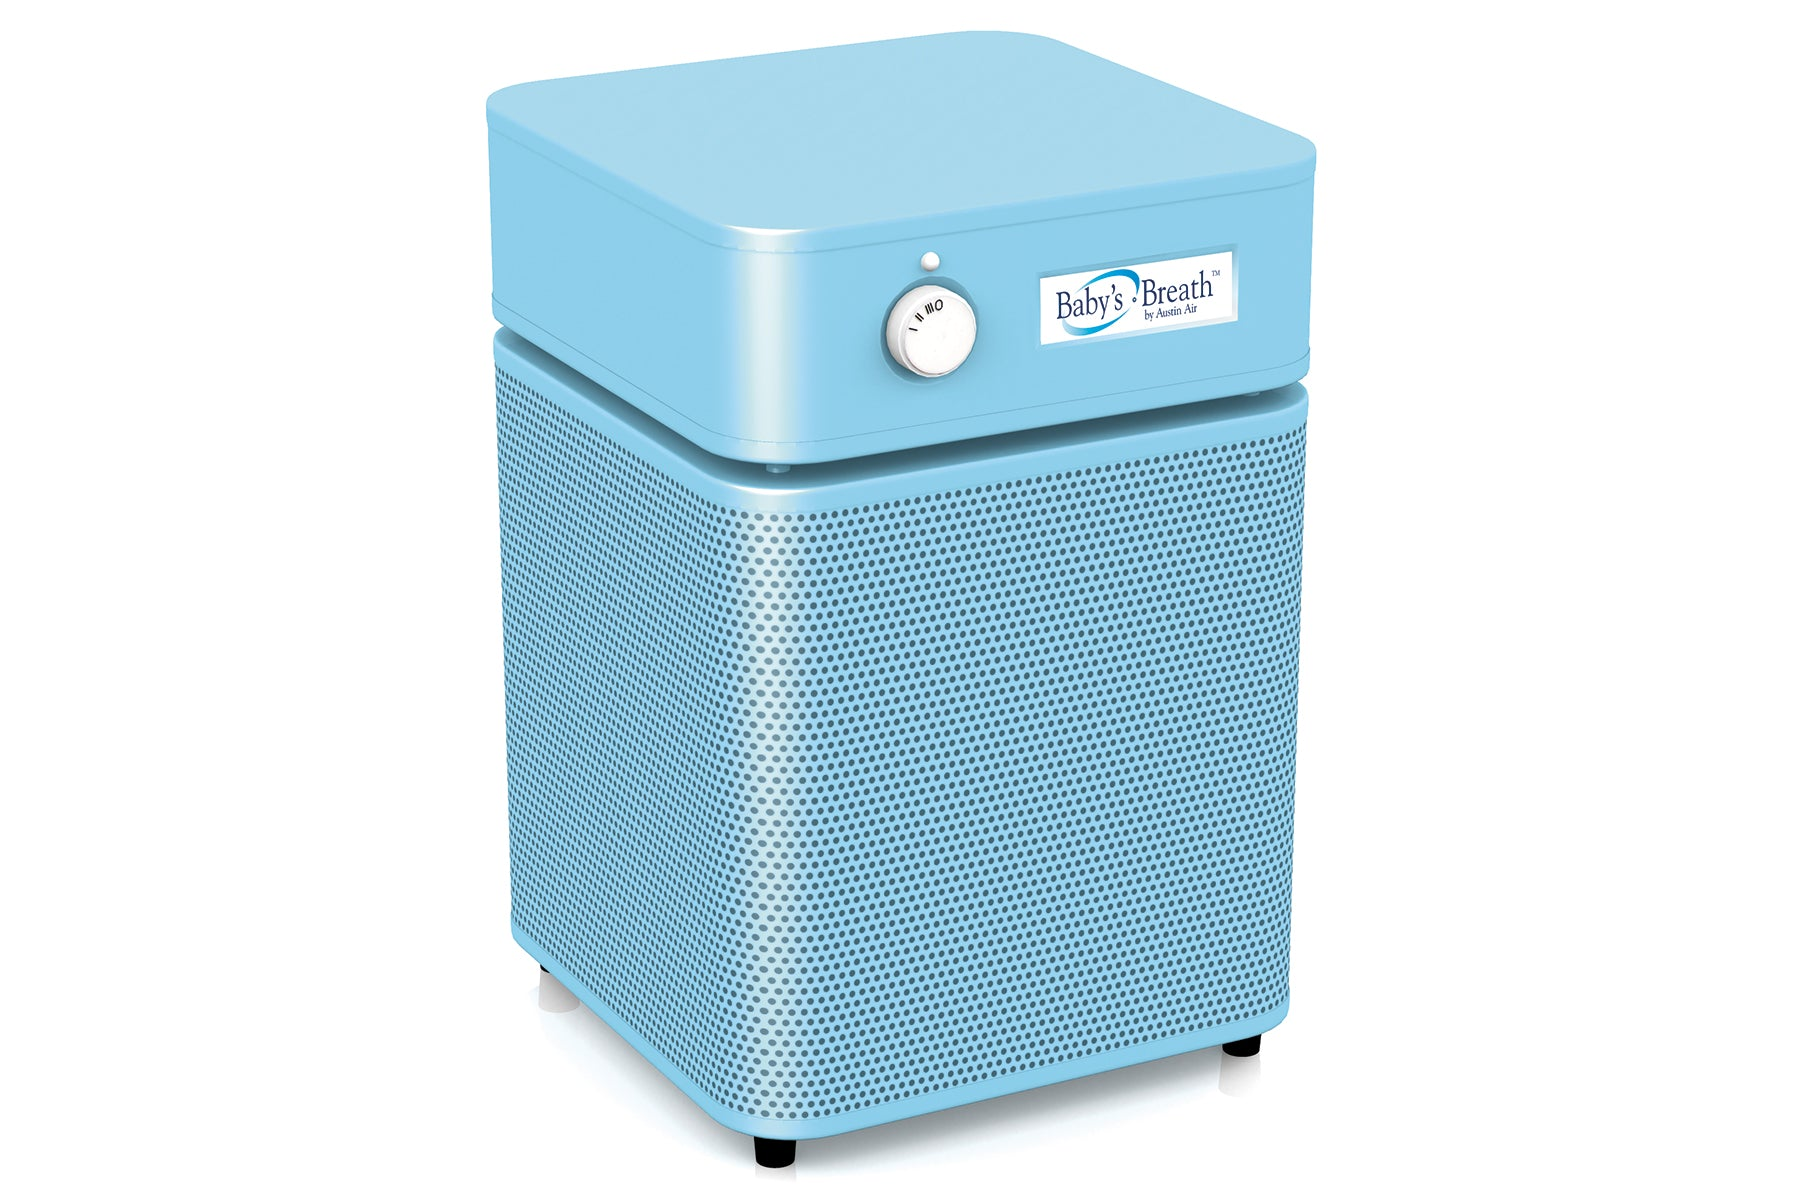 AirPurifier Austin Air Baby's Breath® A205 Air Purifier(s)